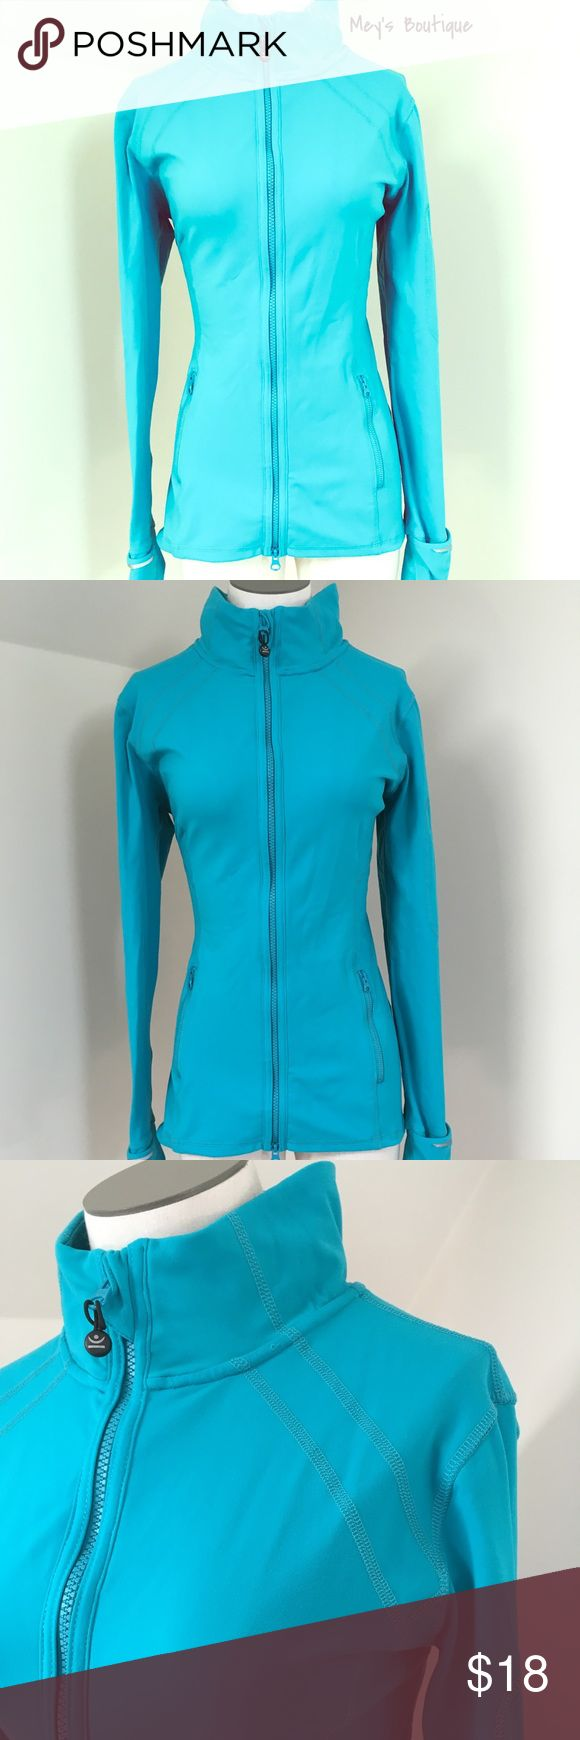 ⭐️Kirkland Blue Spandex Workout Jacket Size M⭐️ ⭐️Kirkland Blue Spandex Workout Jacket Size M⭐️ Kirkland Brand. Excellent Condition! Like New! Next day shipping. Perfect for workouts! Awesome pockets on the arm to hold iPod/phone,  etc. All sales are final. kirkland Jackets & Coats